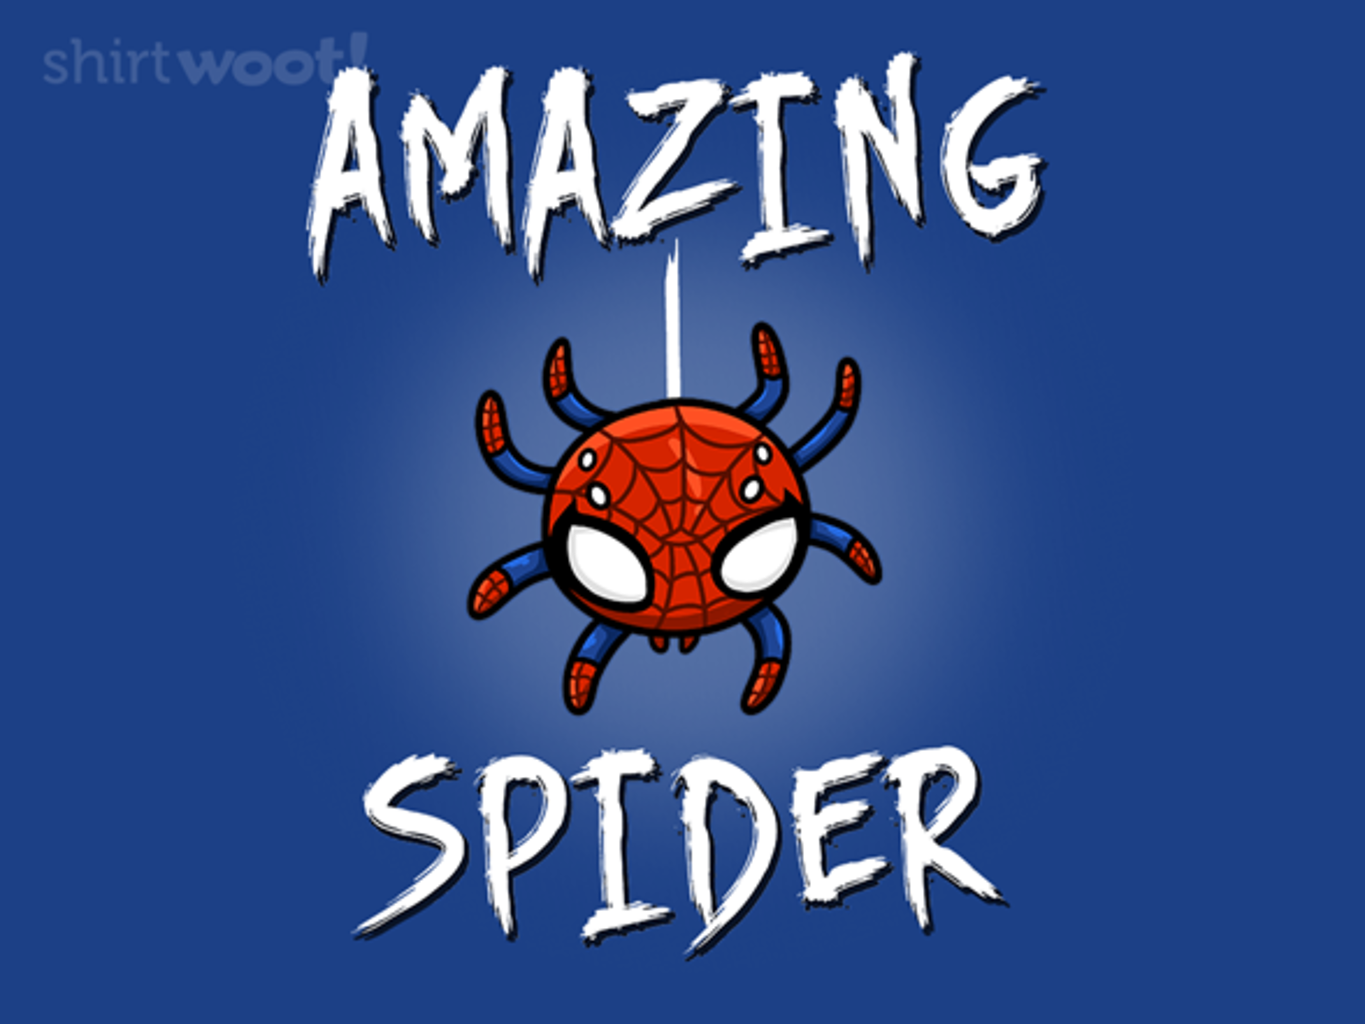 Woot!: The Amazing Spider